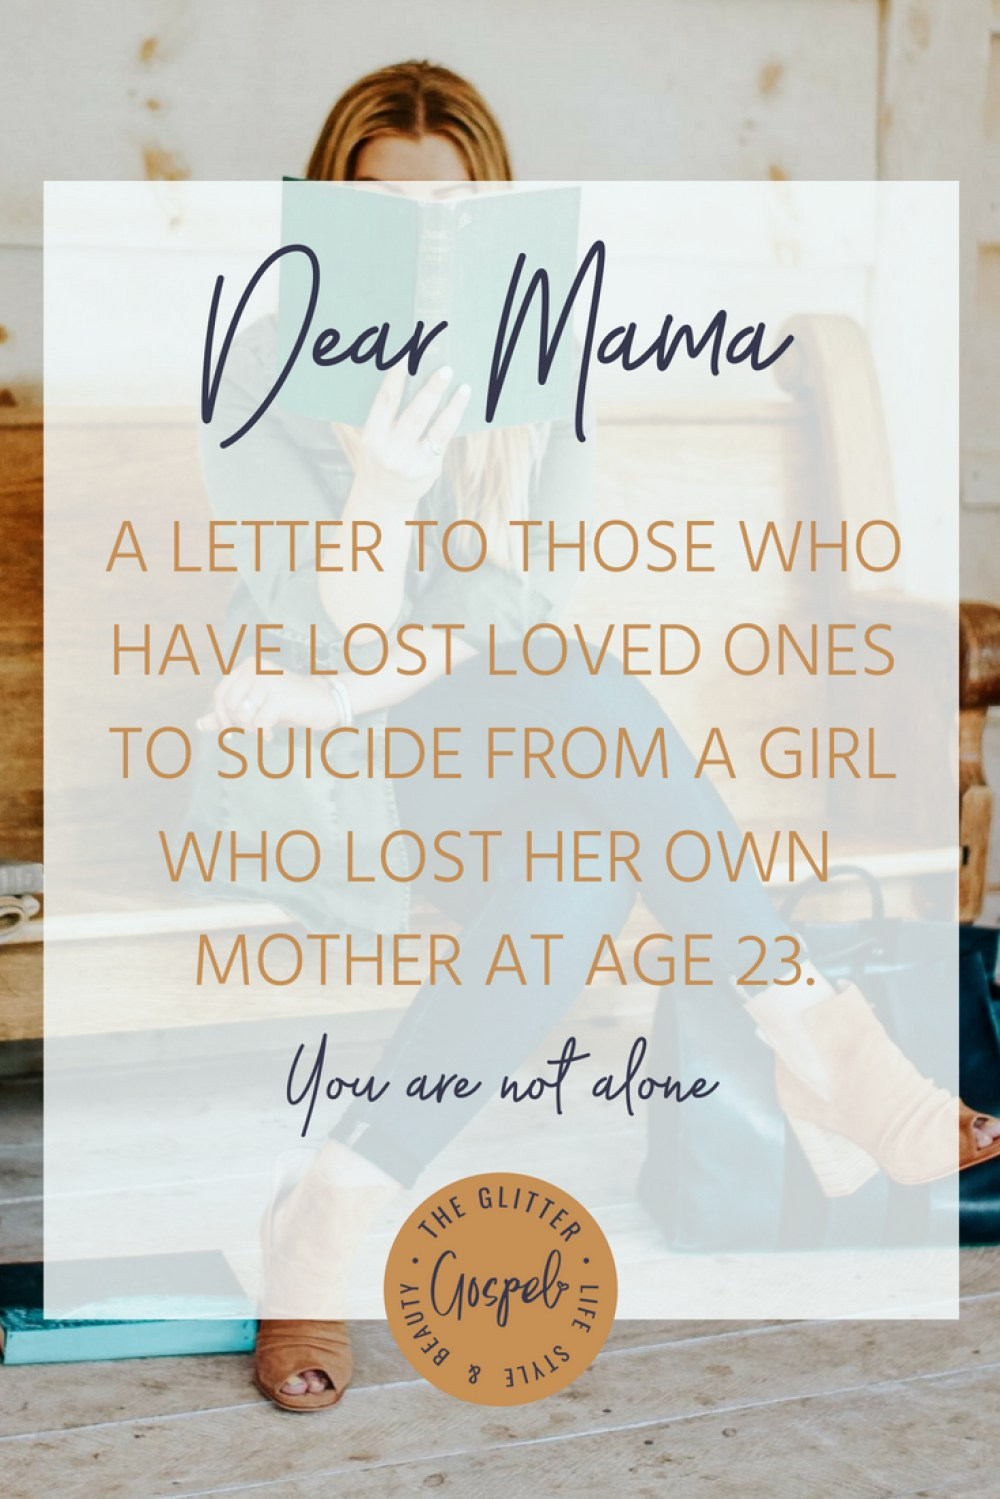 Dear mama, a letter to those who have lost due to suicide. The Glitter Gospel, Suicide Prevention, Grief, Losing a Parent